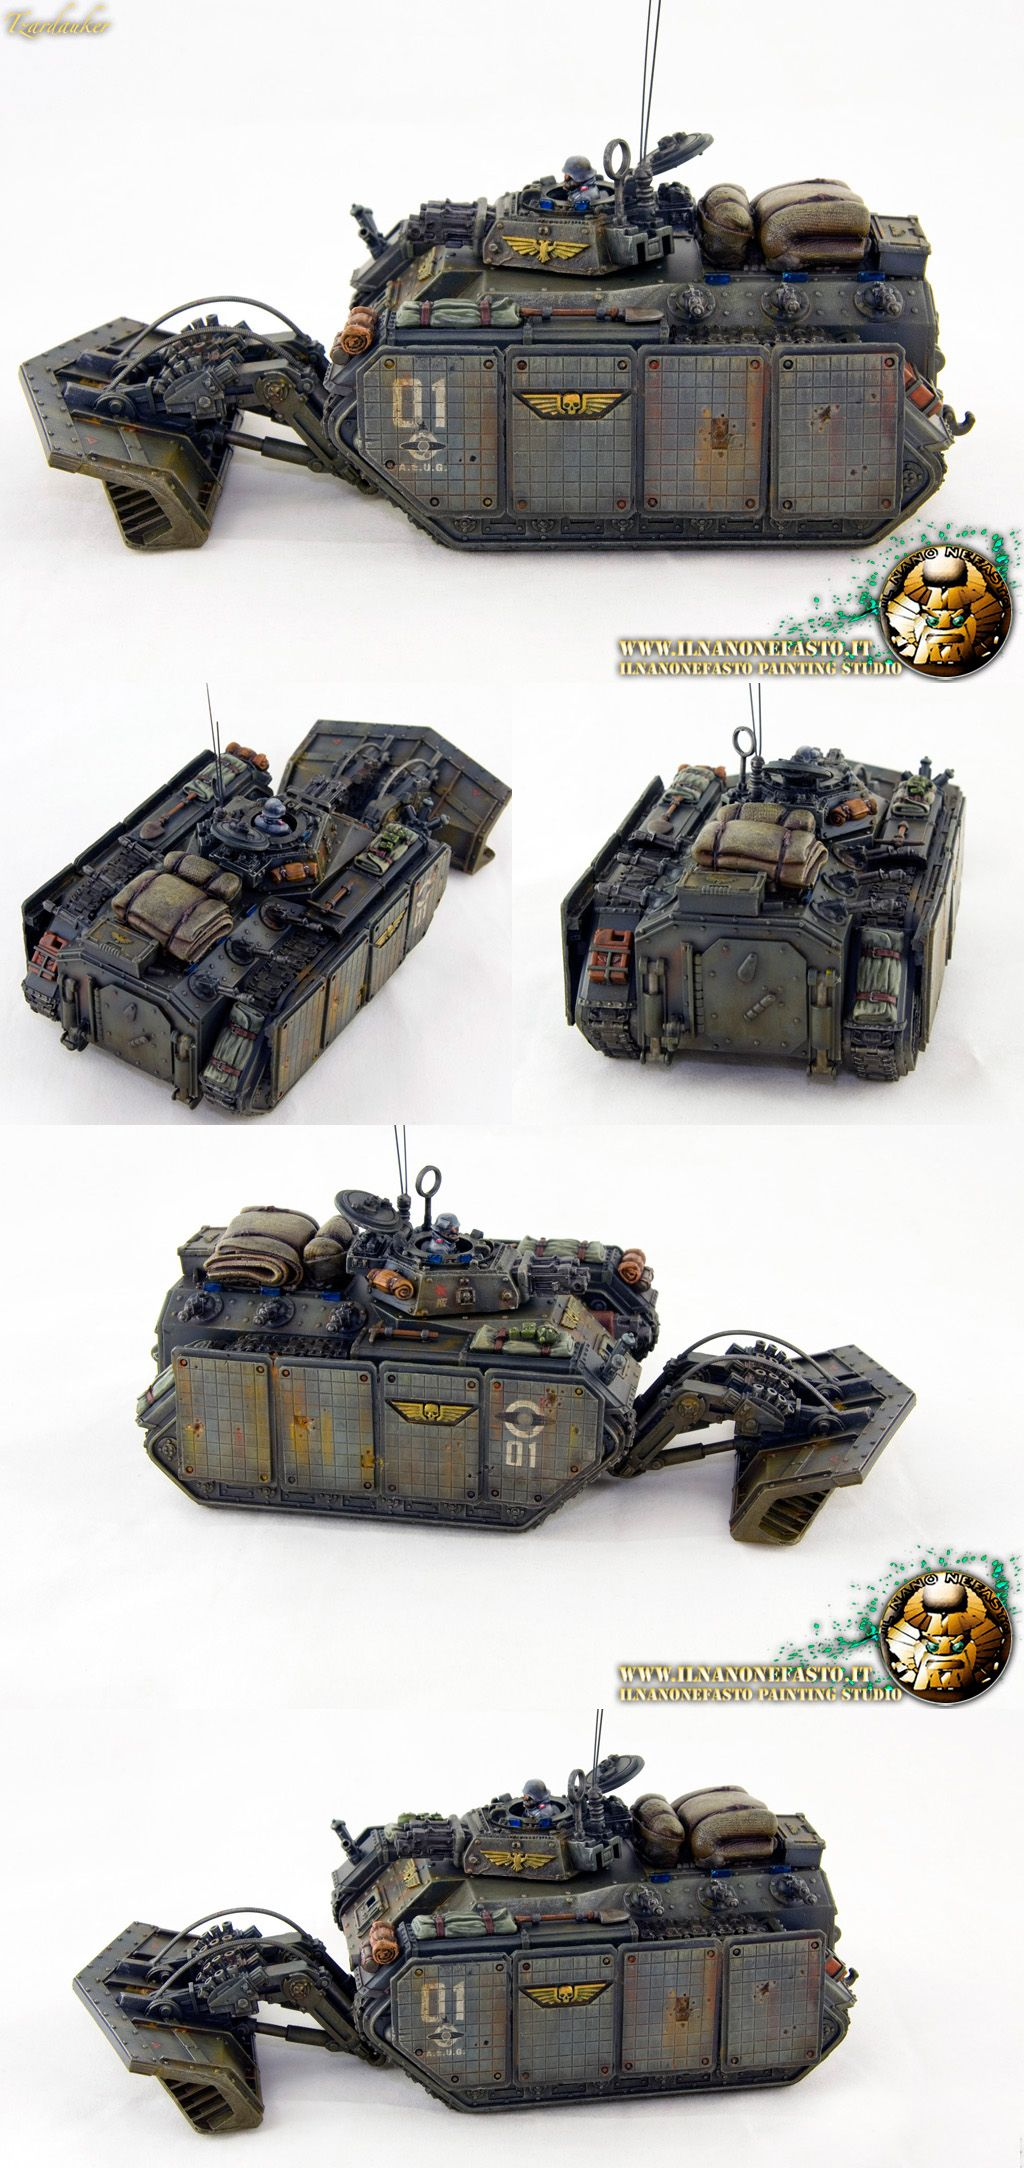 Imperial guard Chimera: Heavy bolter turret, additional armor and shovel mine.